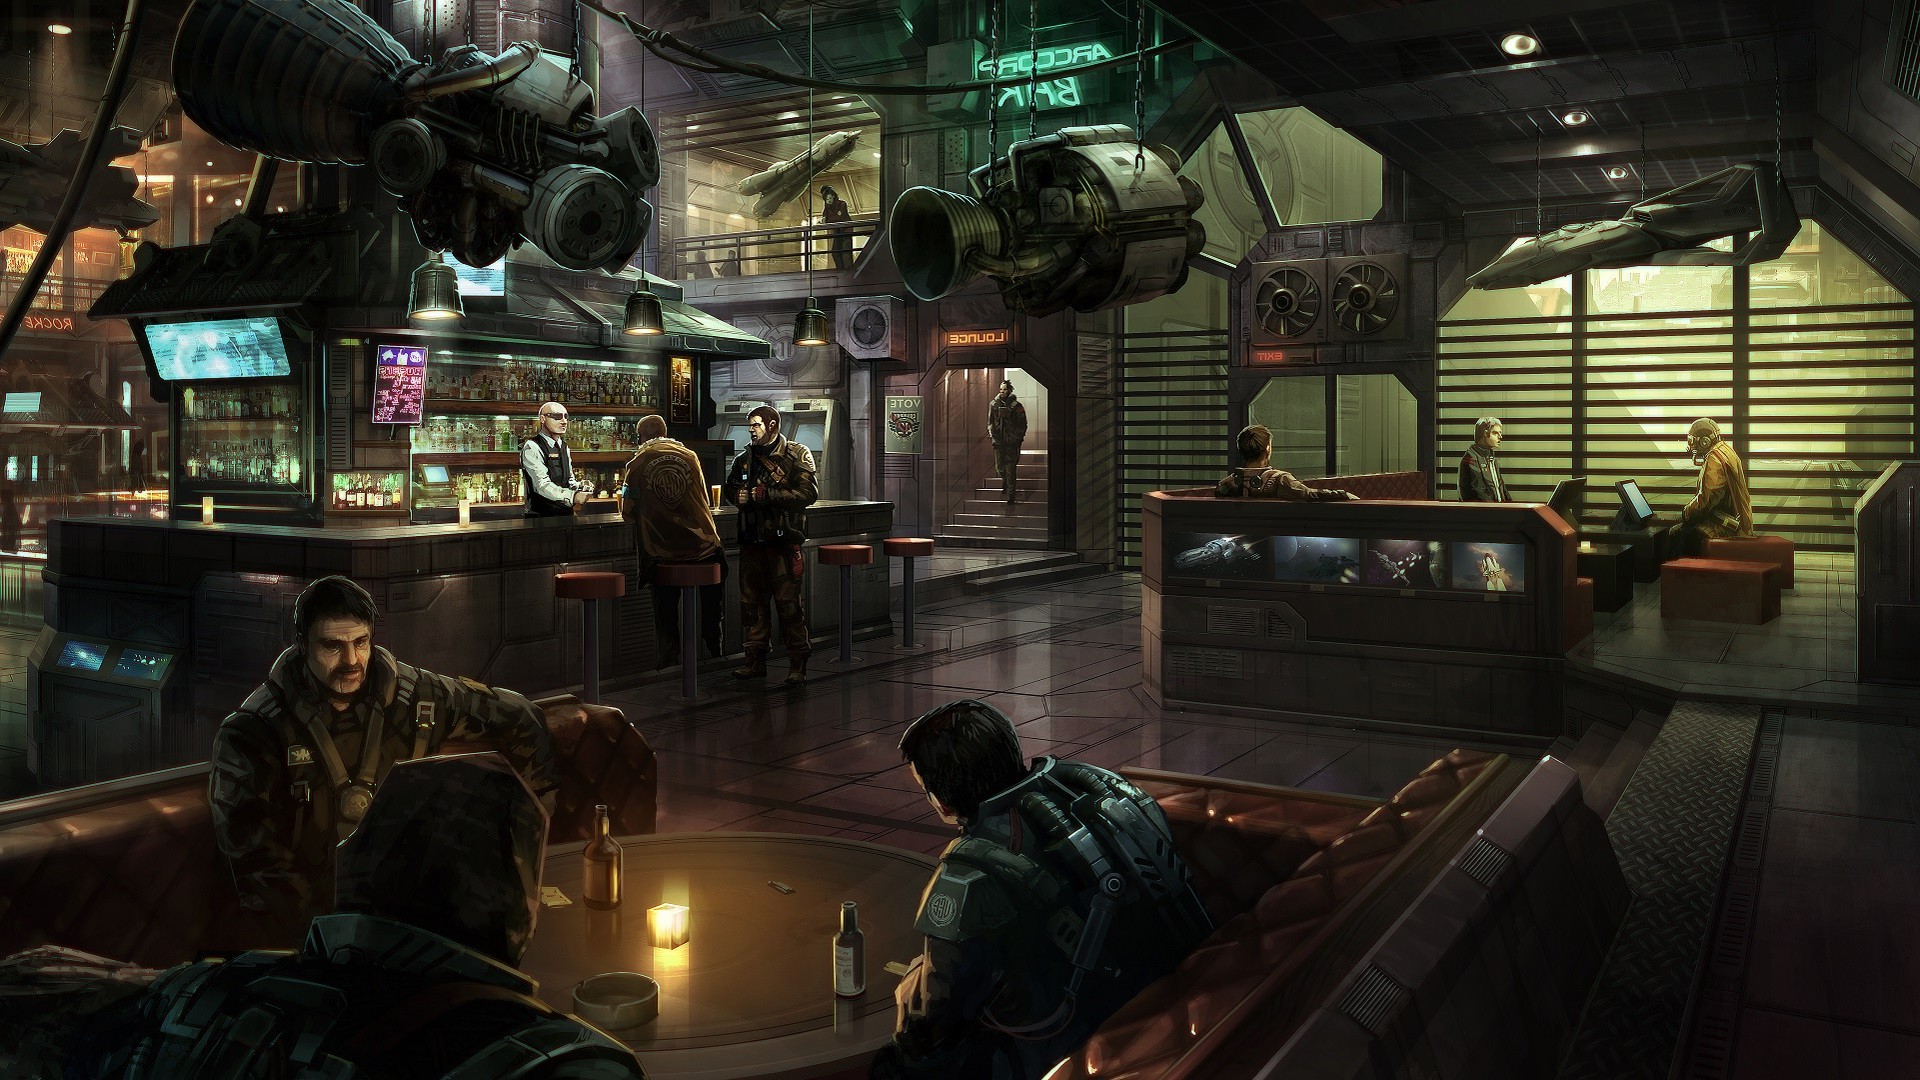 Space Spaceship Star Citizen Bar Digital Art ArcCorp